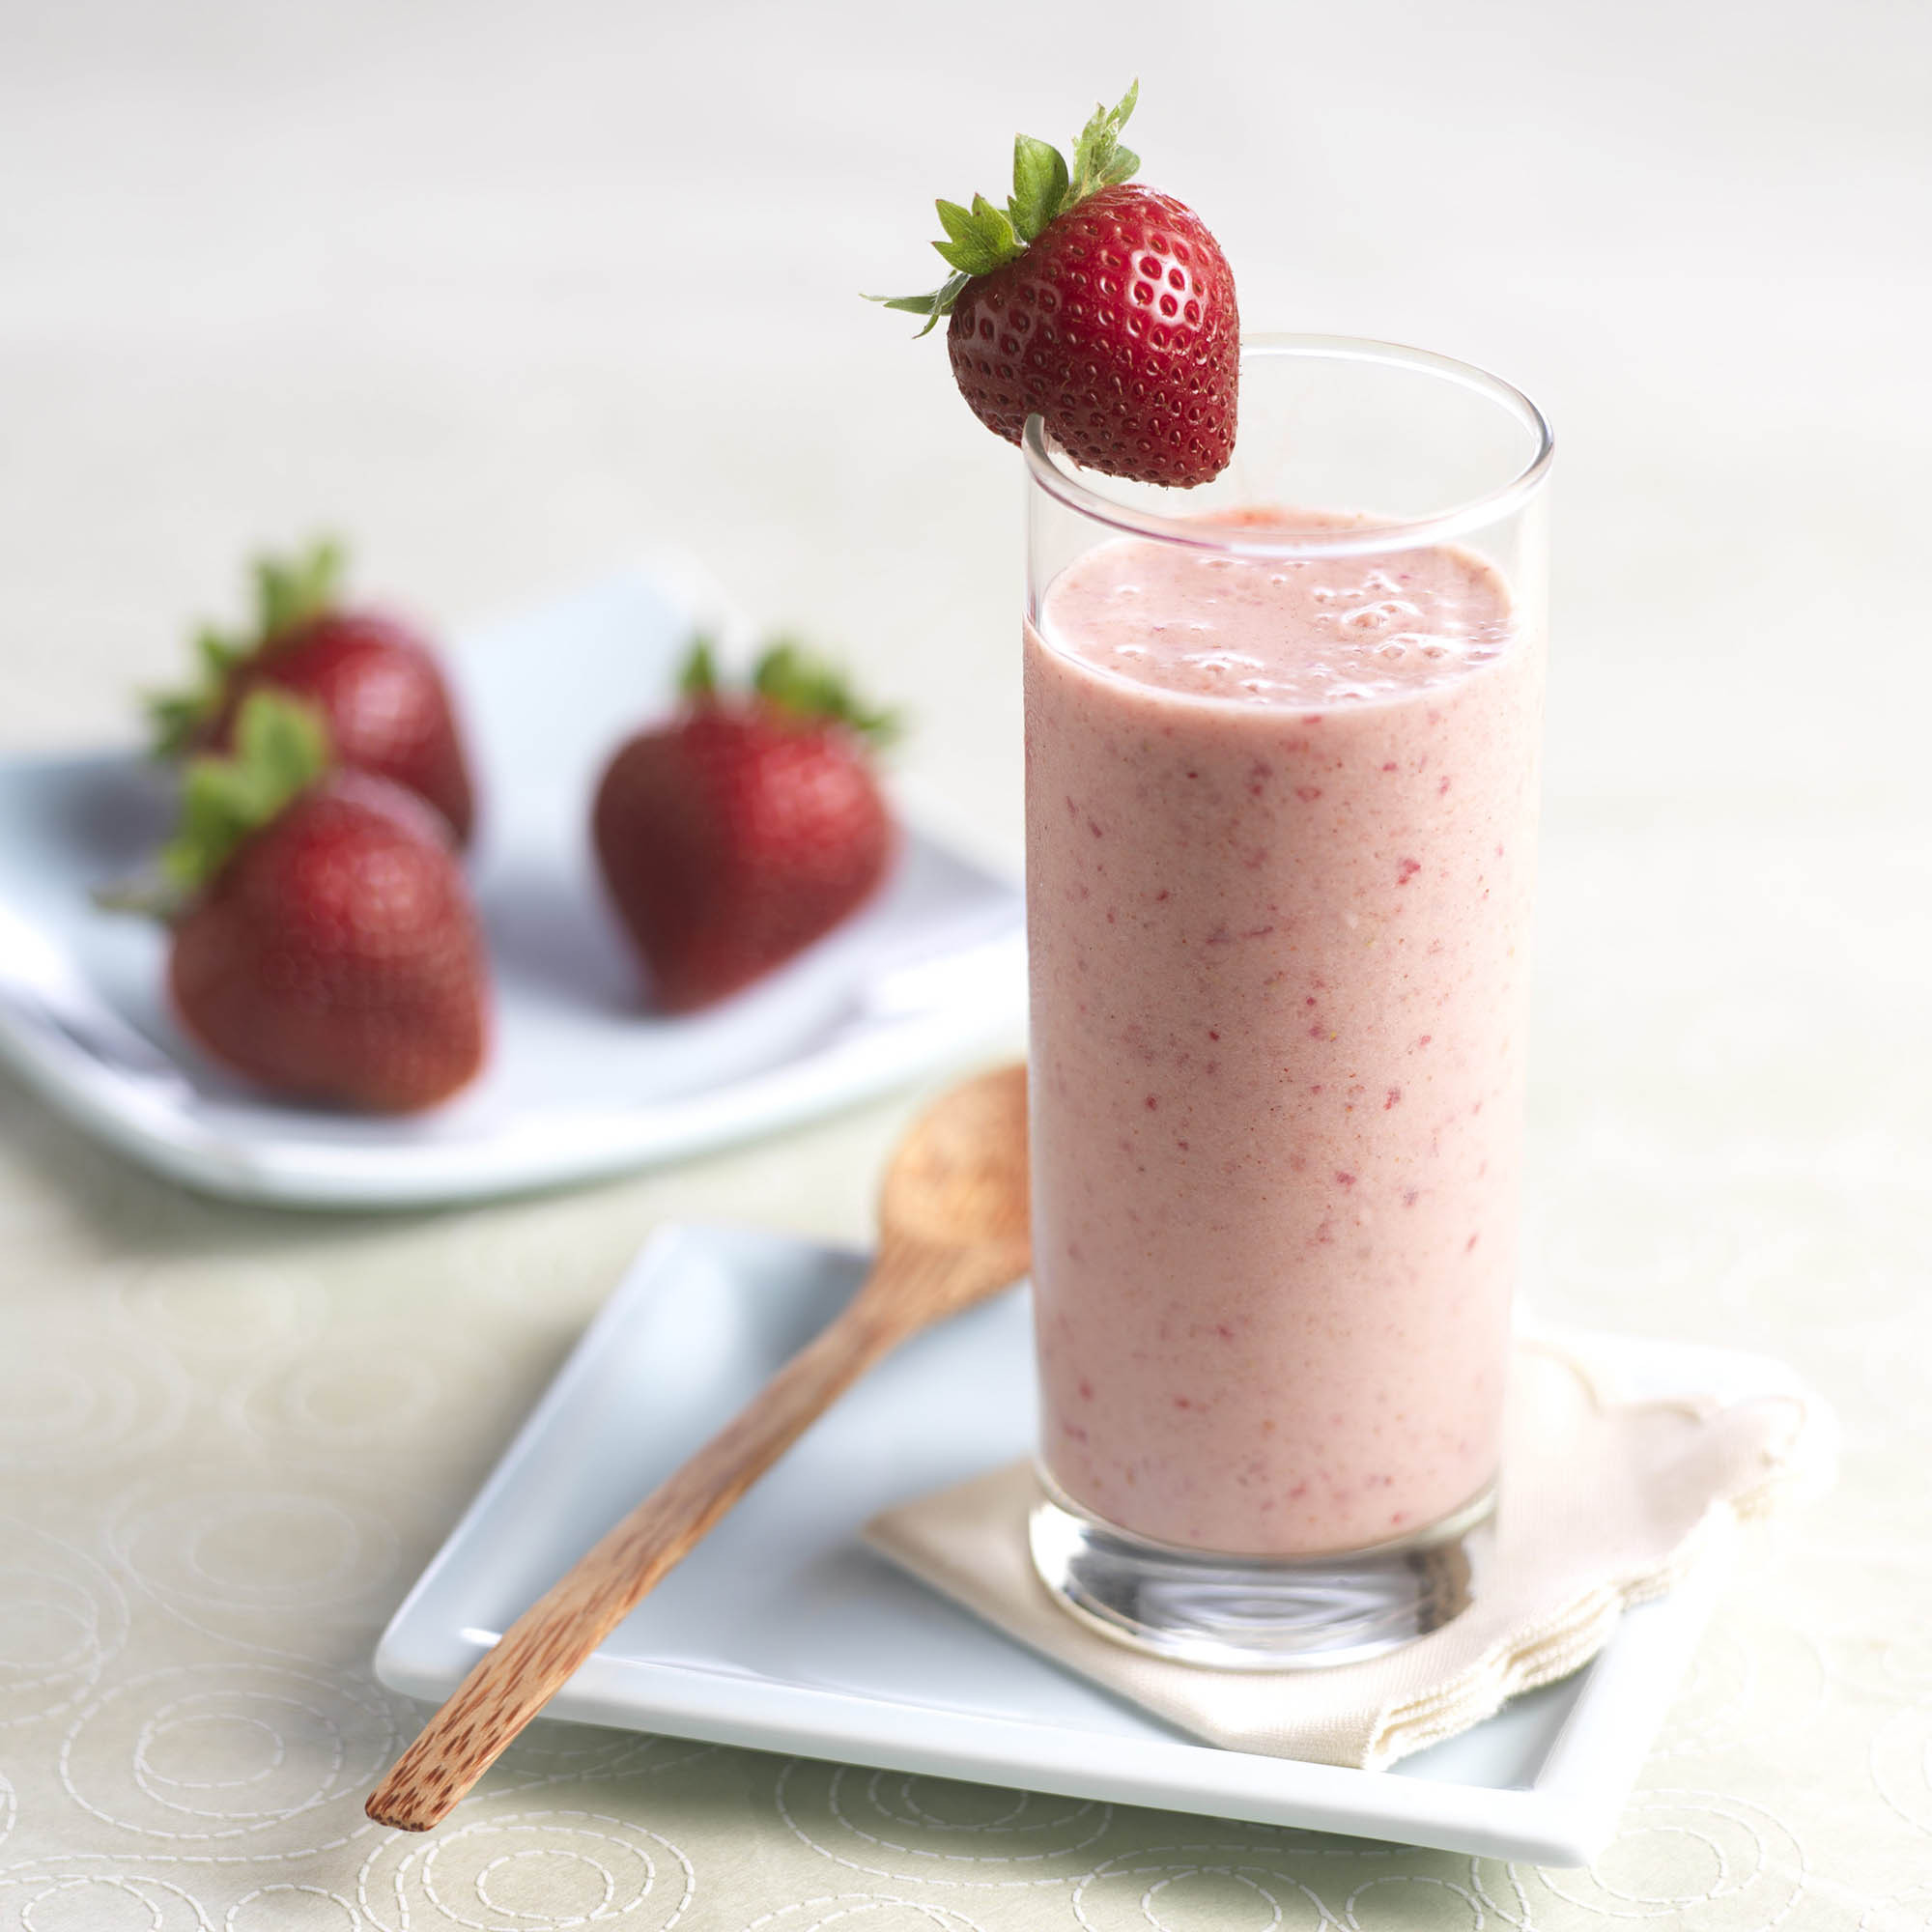 Healthy Strawberry Smoothie Recipes Weight Loss  Weight Loss Chocolate Strawberry Smoothie